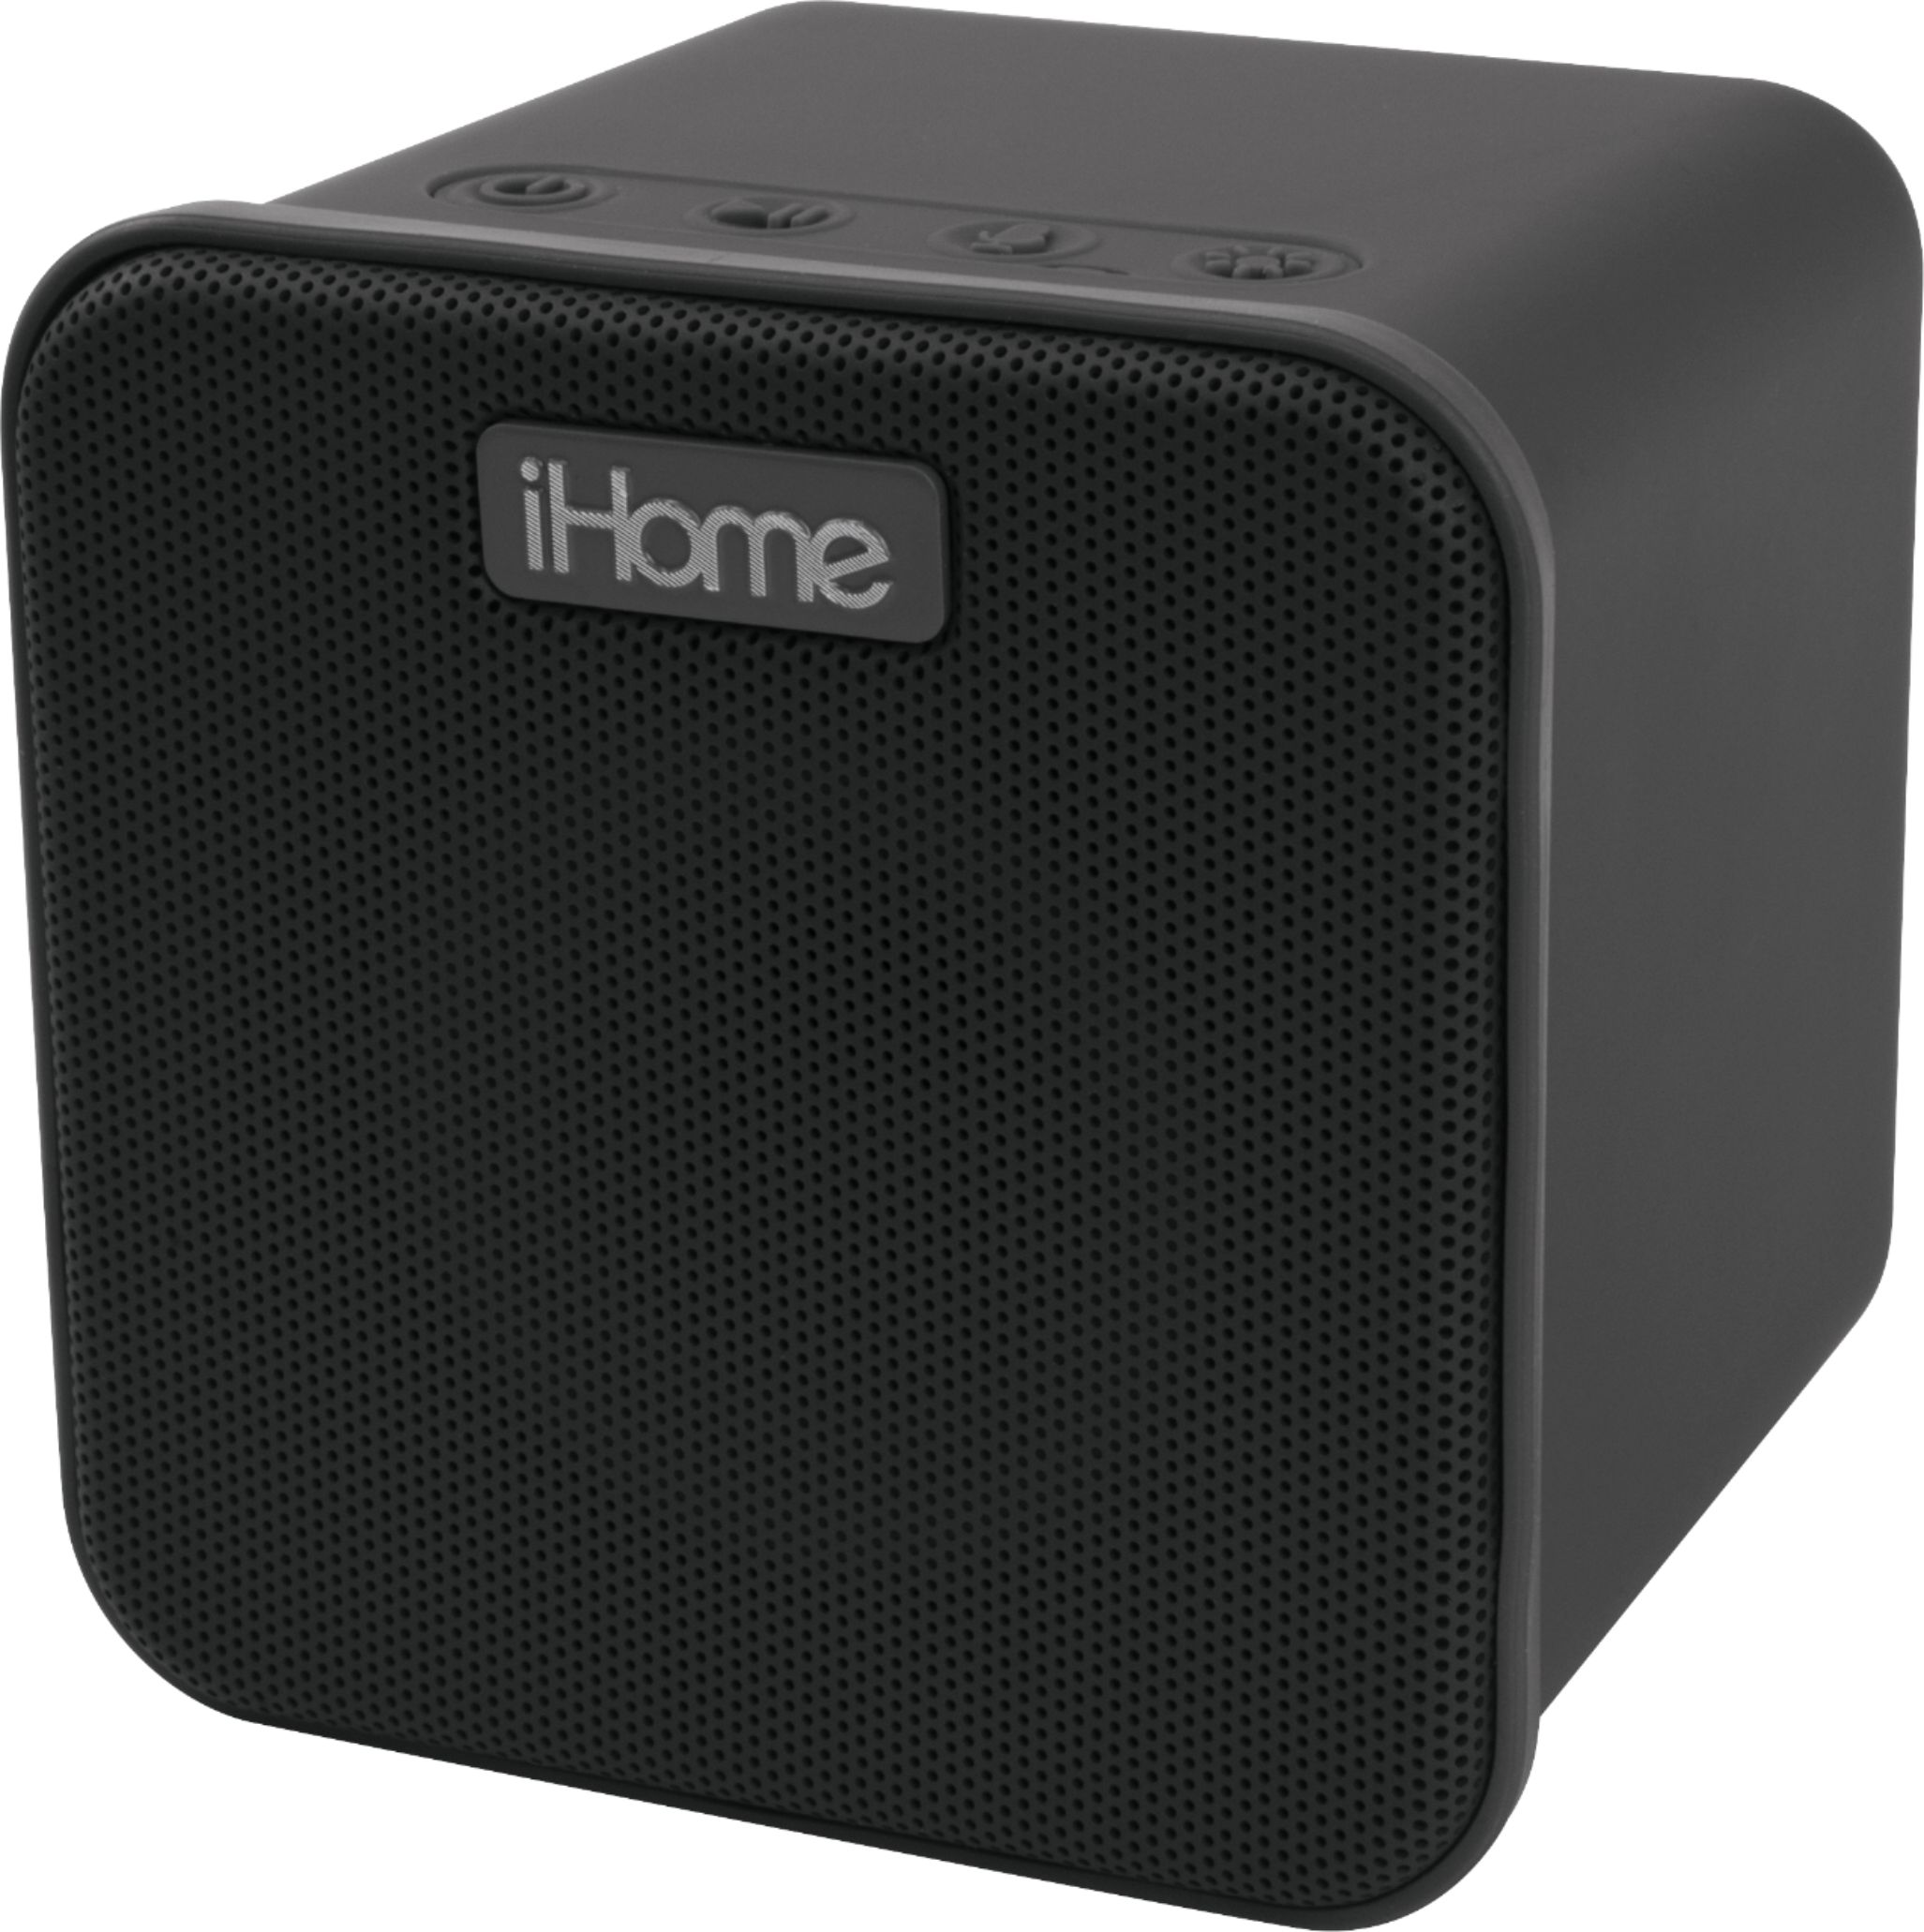 Bluetooth Box Ihome Ibt58 Portable Bluetooth Speaker With Siri Voice Assistant Black